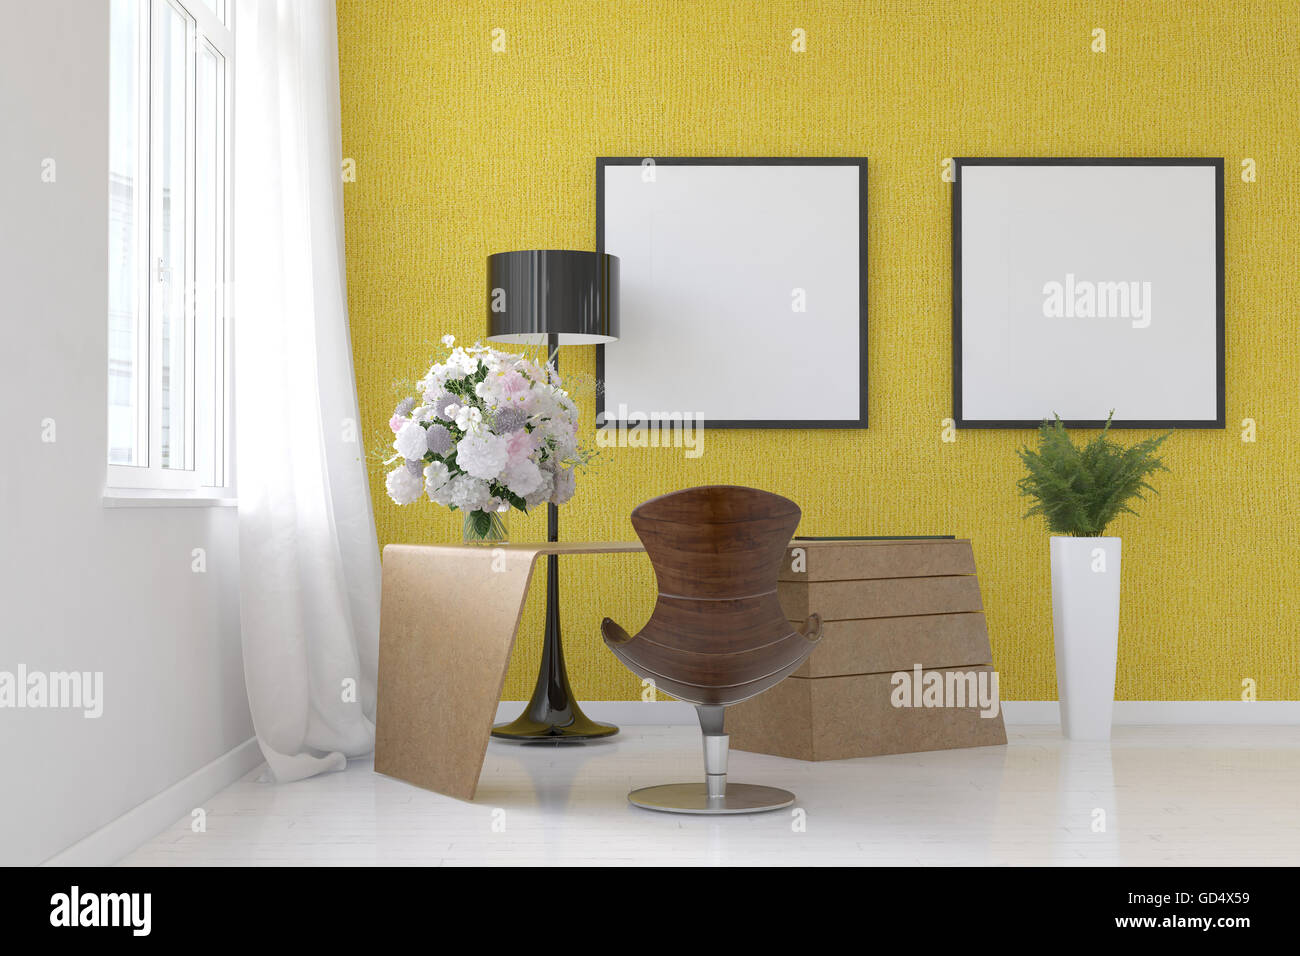 Stylish modern living room interior with yellow decor and two blank ...